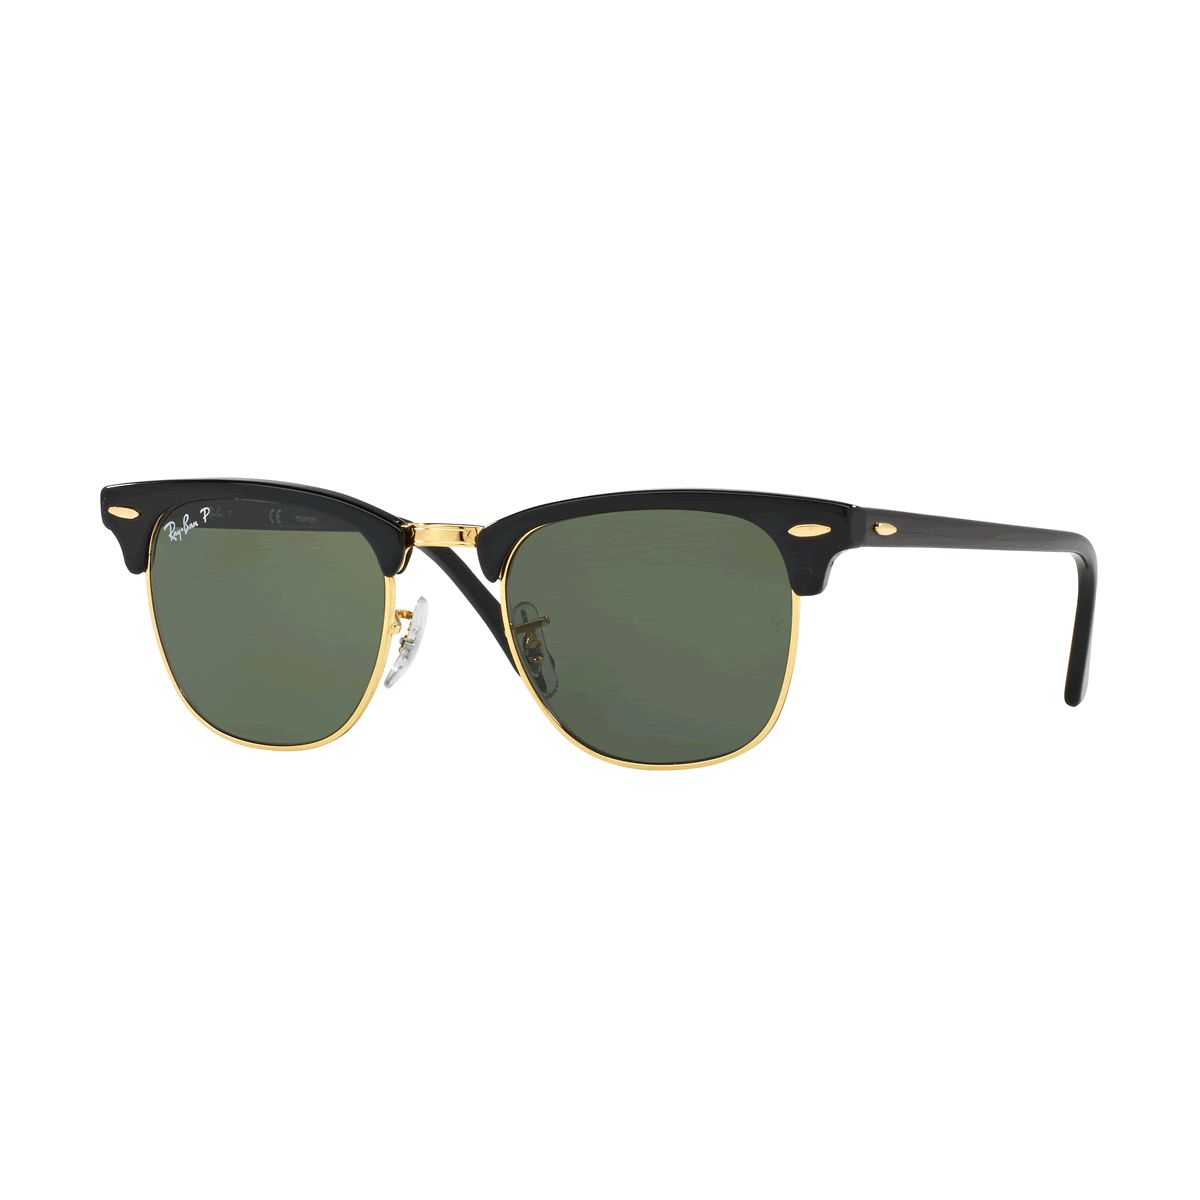 19c1ebe7dd1 Ray-Ban Sunglasses - Mens   Womens Ray-Bans - Macy s